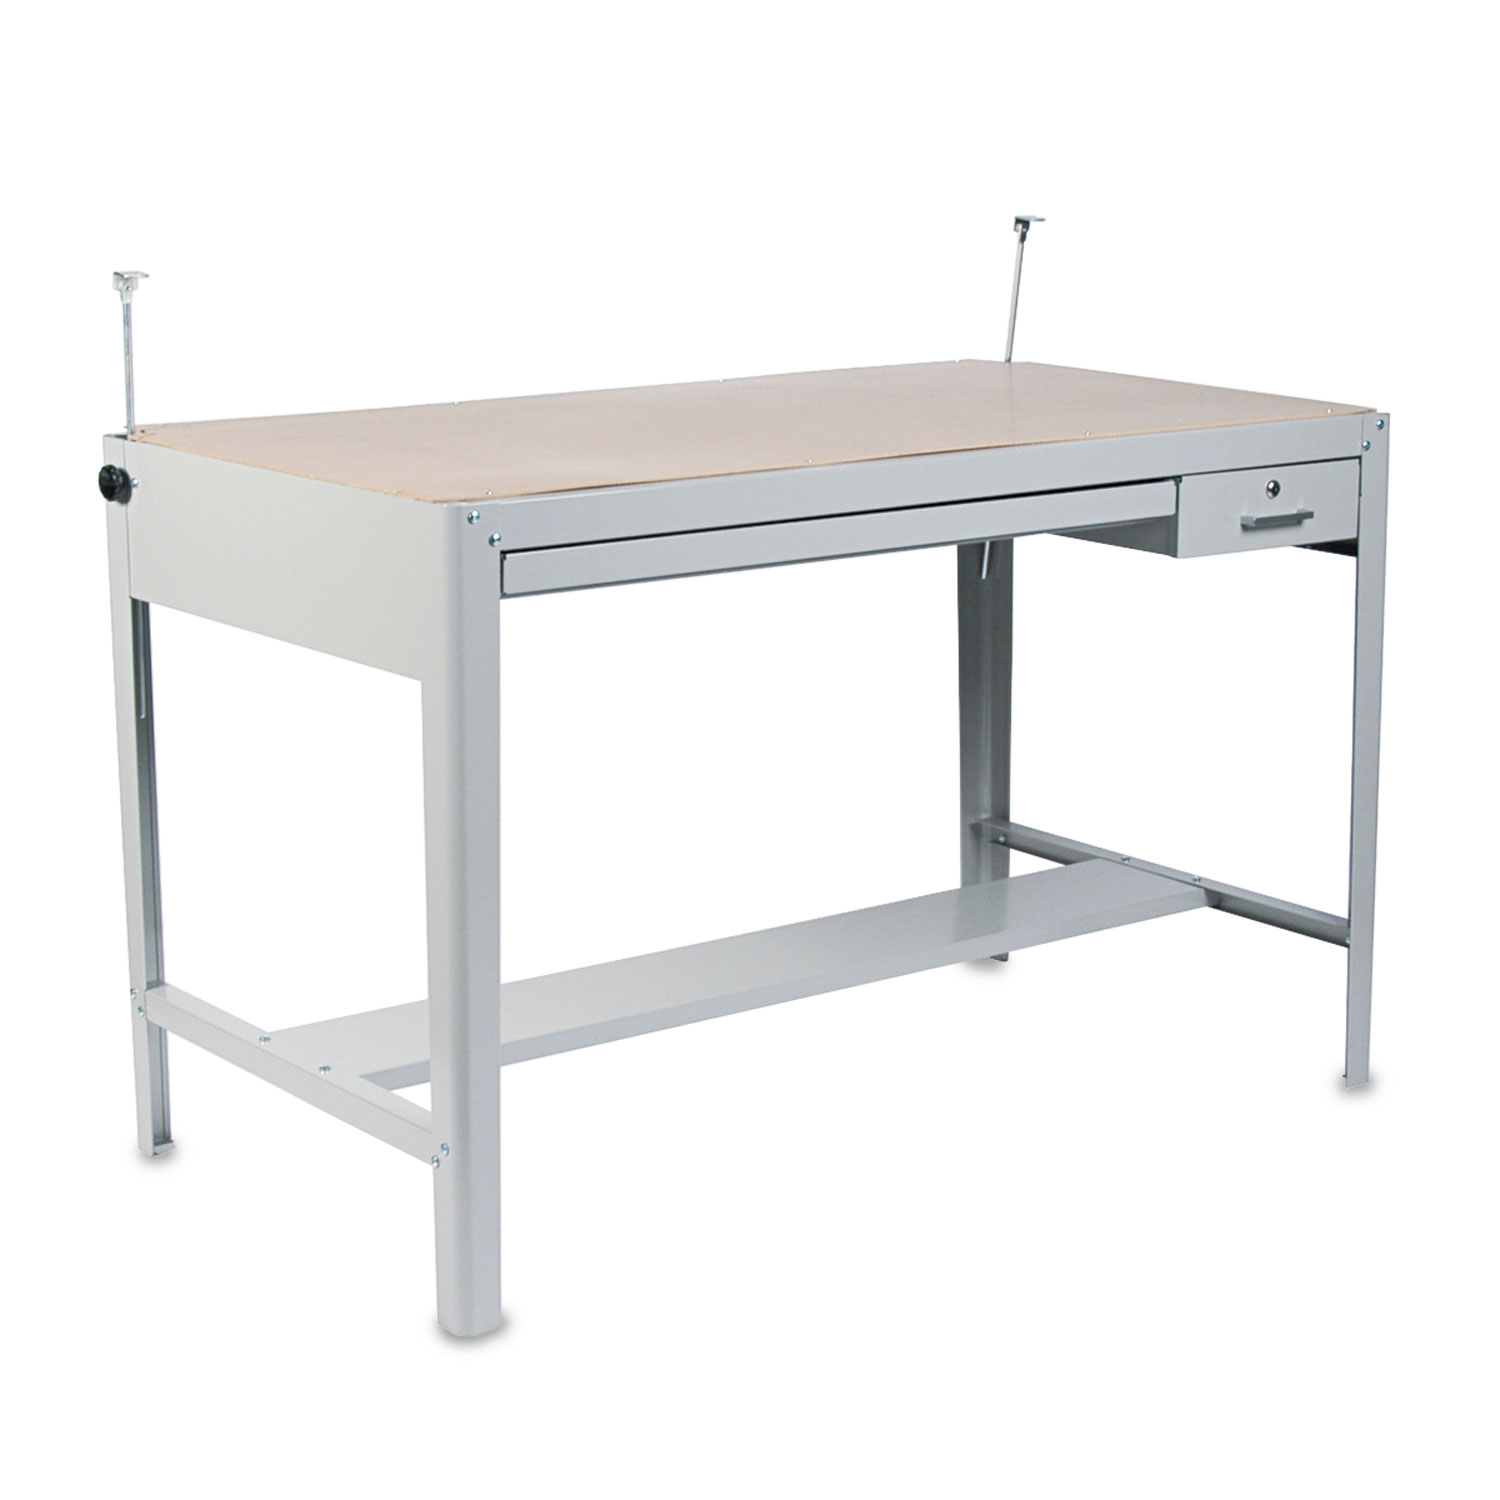 Adjustable Height Drafting Table Precision Four Post Drafting Table Base 56 1 2w X 30 1 2d X 35 1 2h Gray